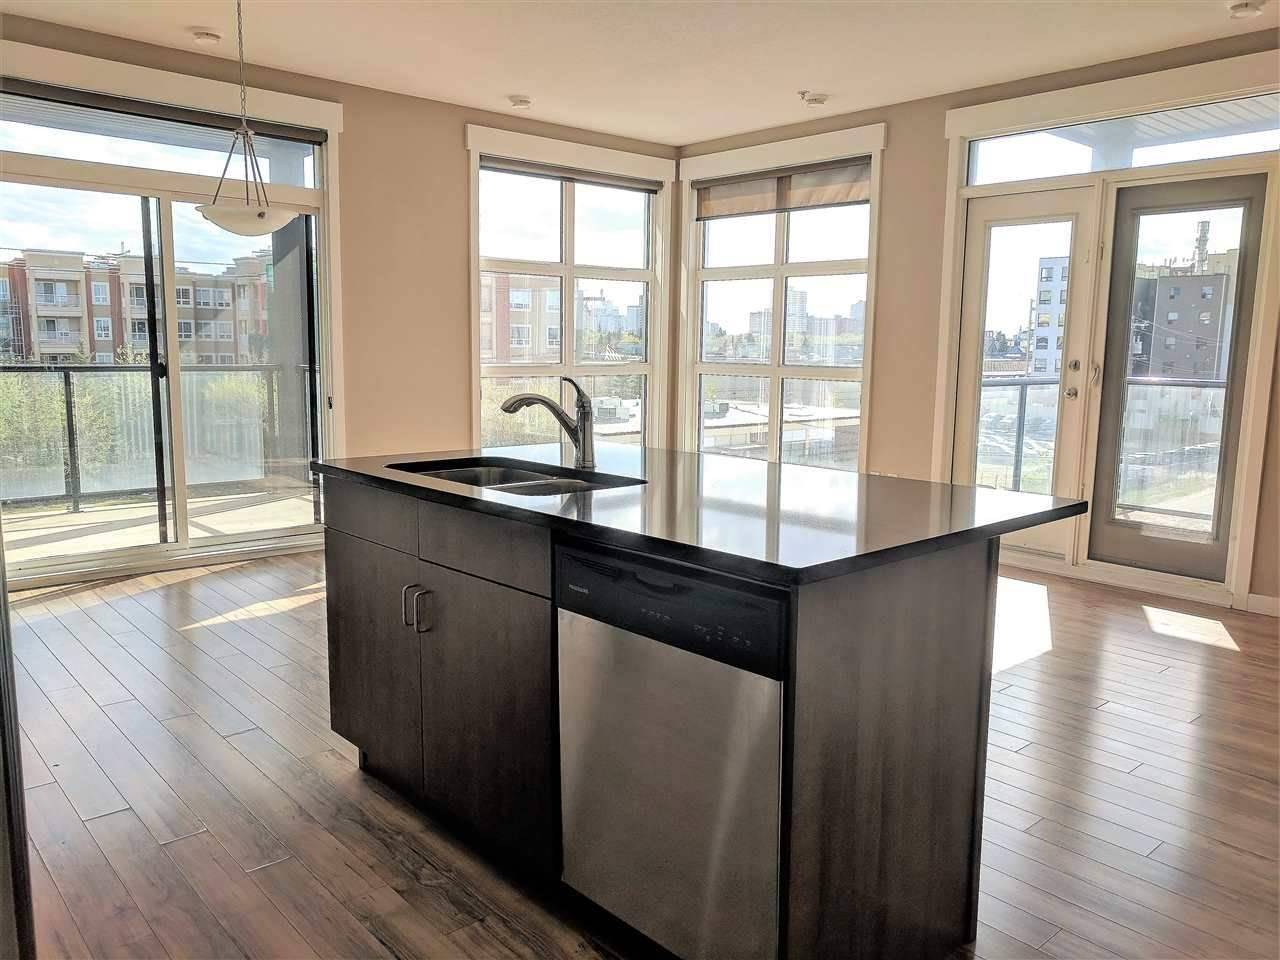 Condo for sale at 10518 113 St Nw Unit 405 Edmonton Alberta - MLS: E4193610